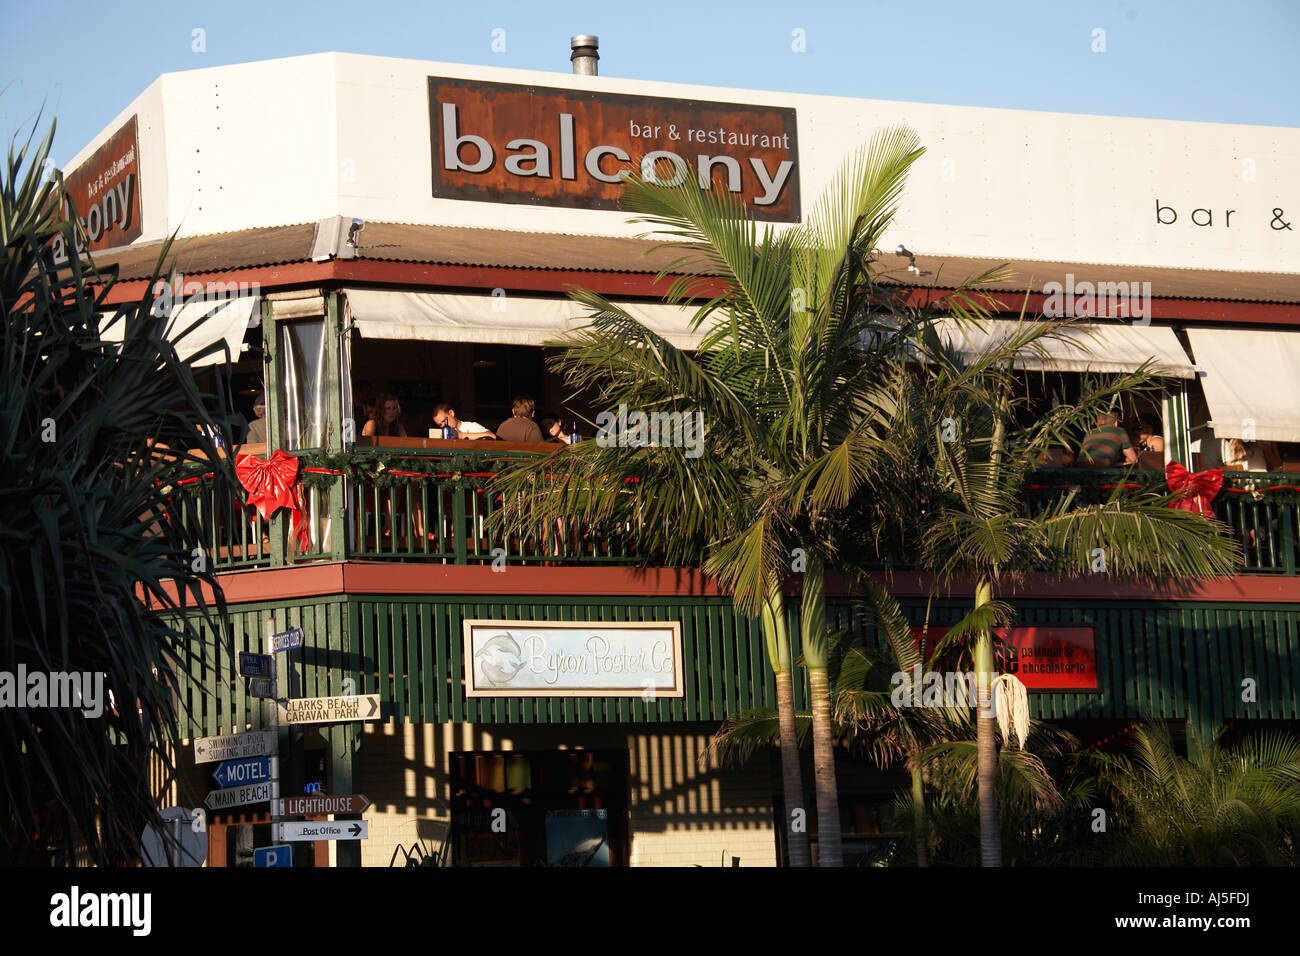 Balcony bar and restuarant in byron bay new south wales for Balcony restaurant byron